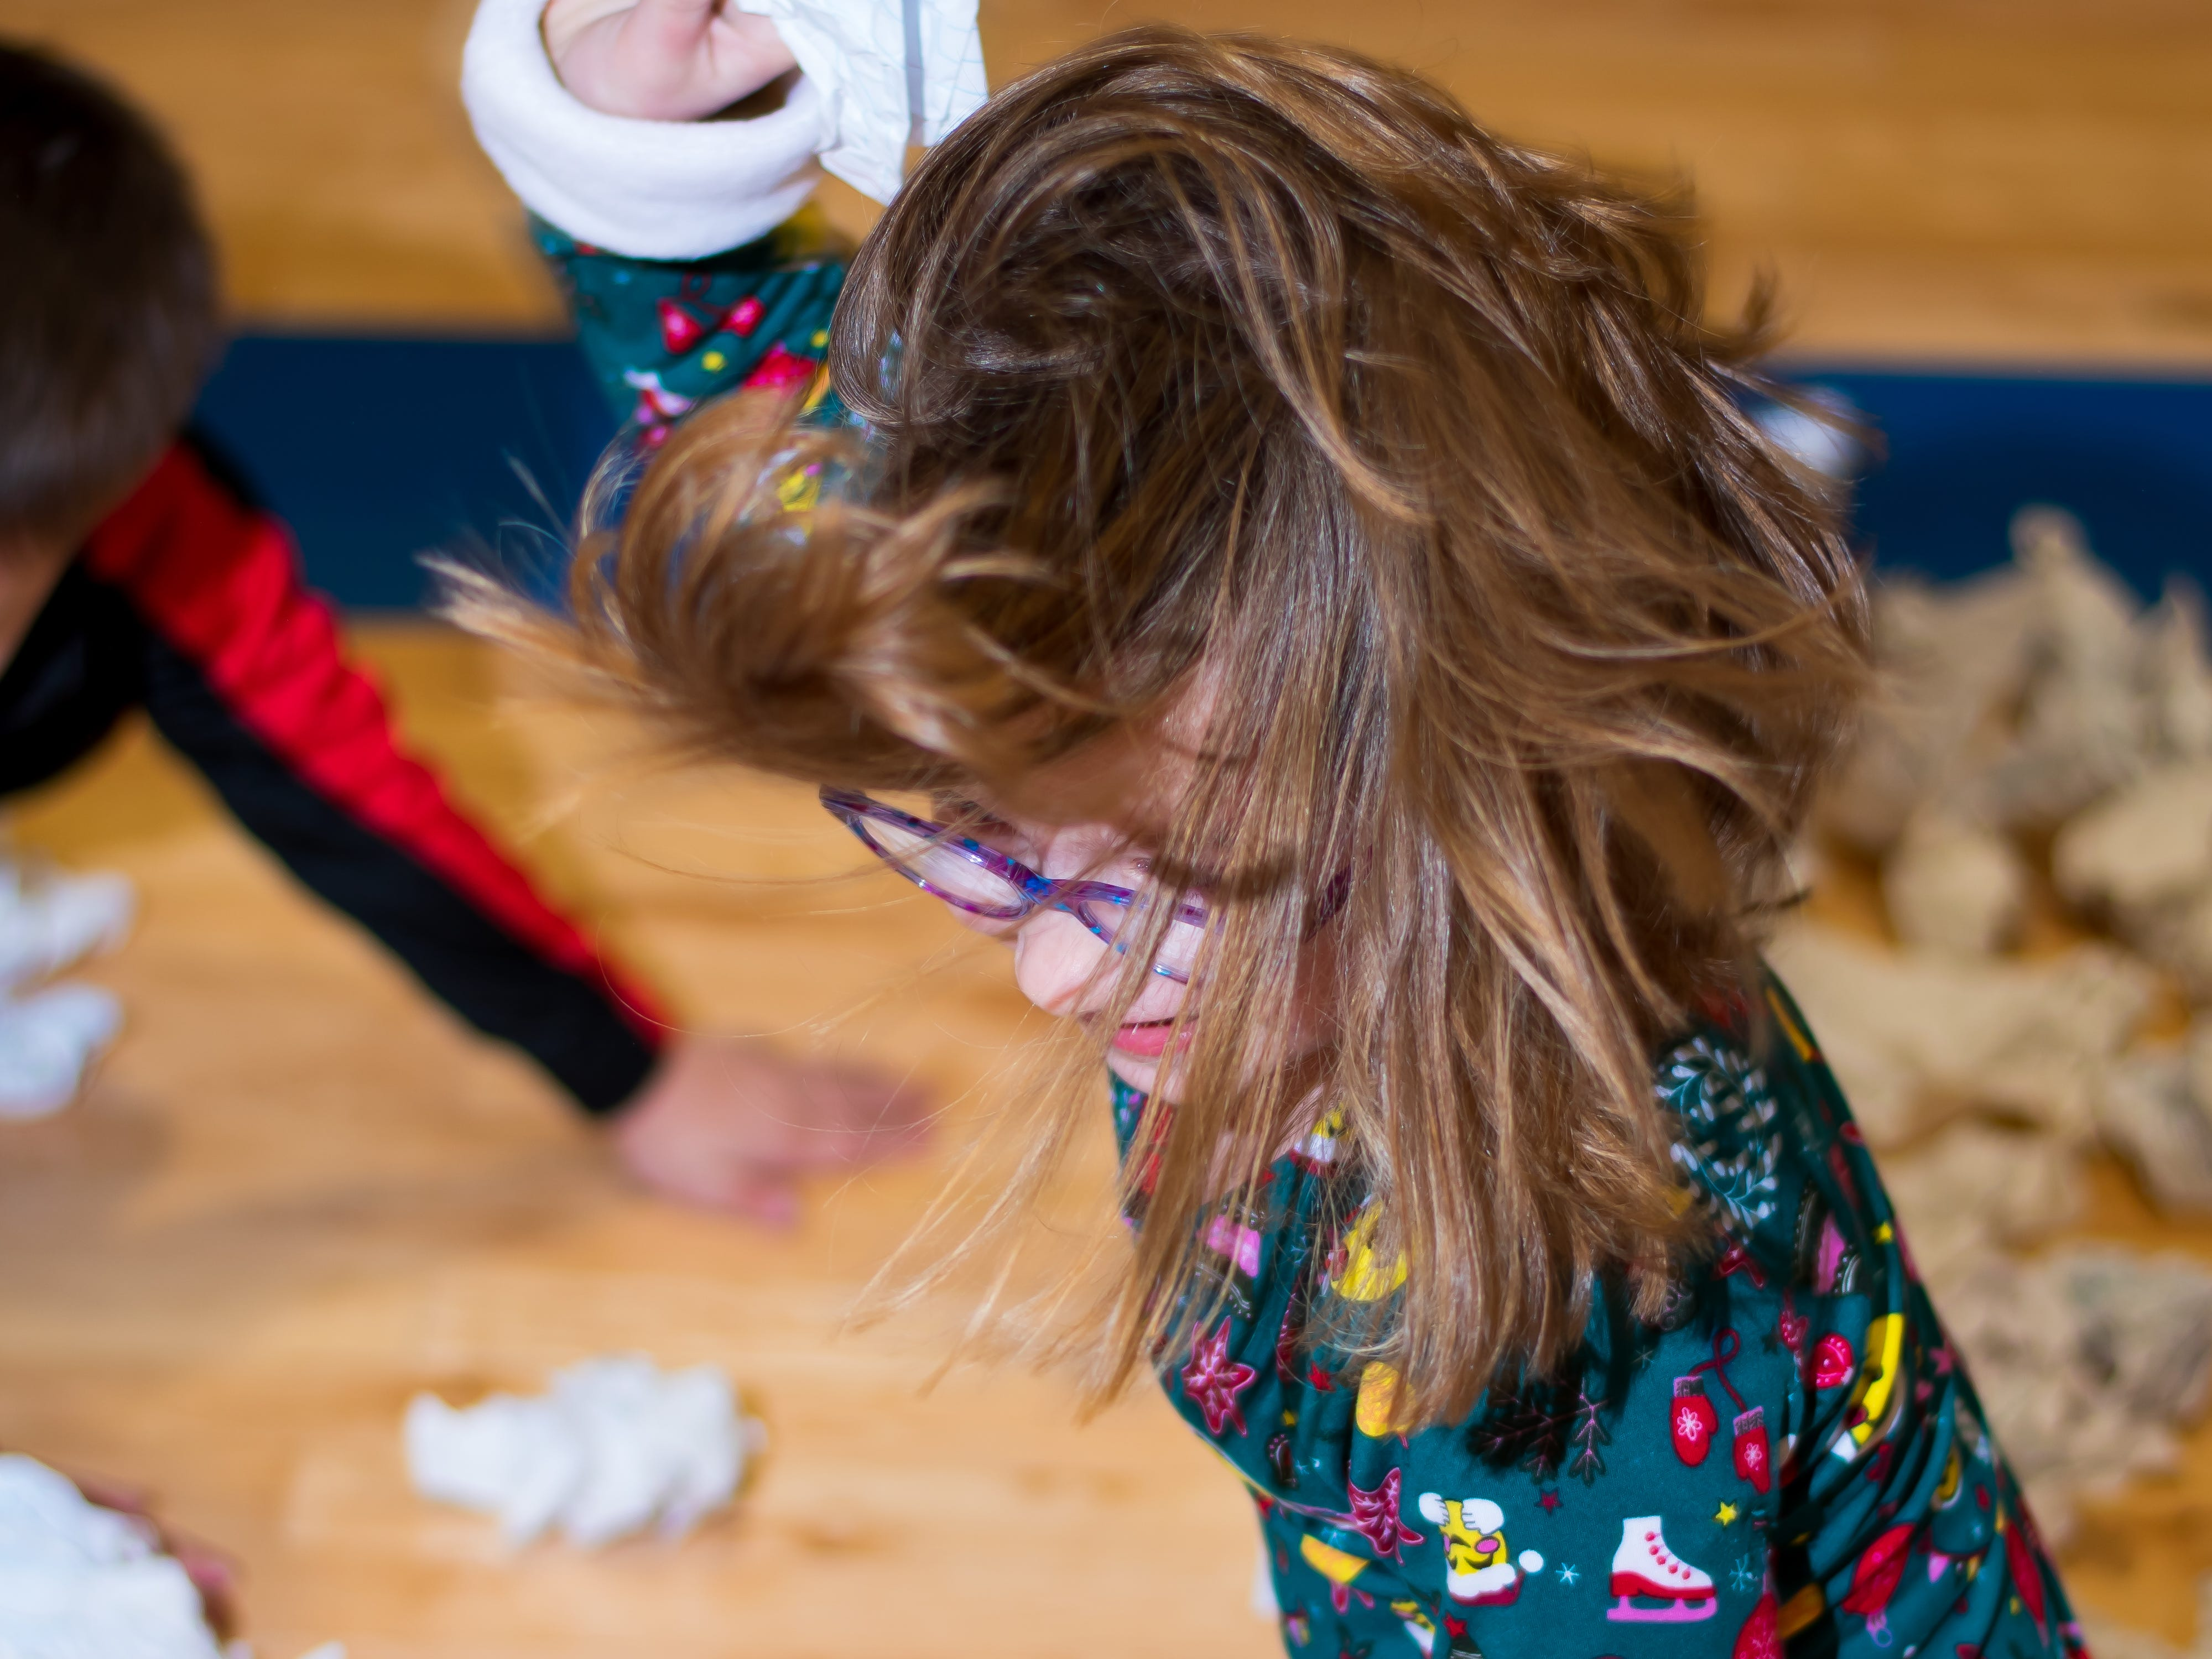 Evelyn Olson, 6, of Urbandale plays a snowball game on Friday, Dec. 21, 2018 at Karen Acres Elementary School in Urbandale for their winter party.